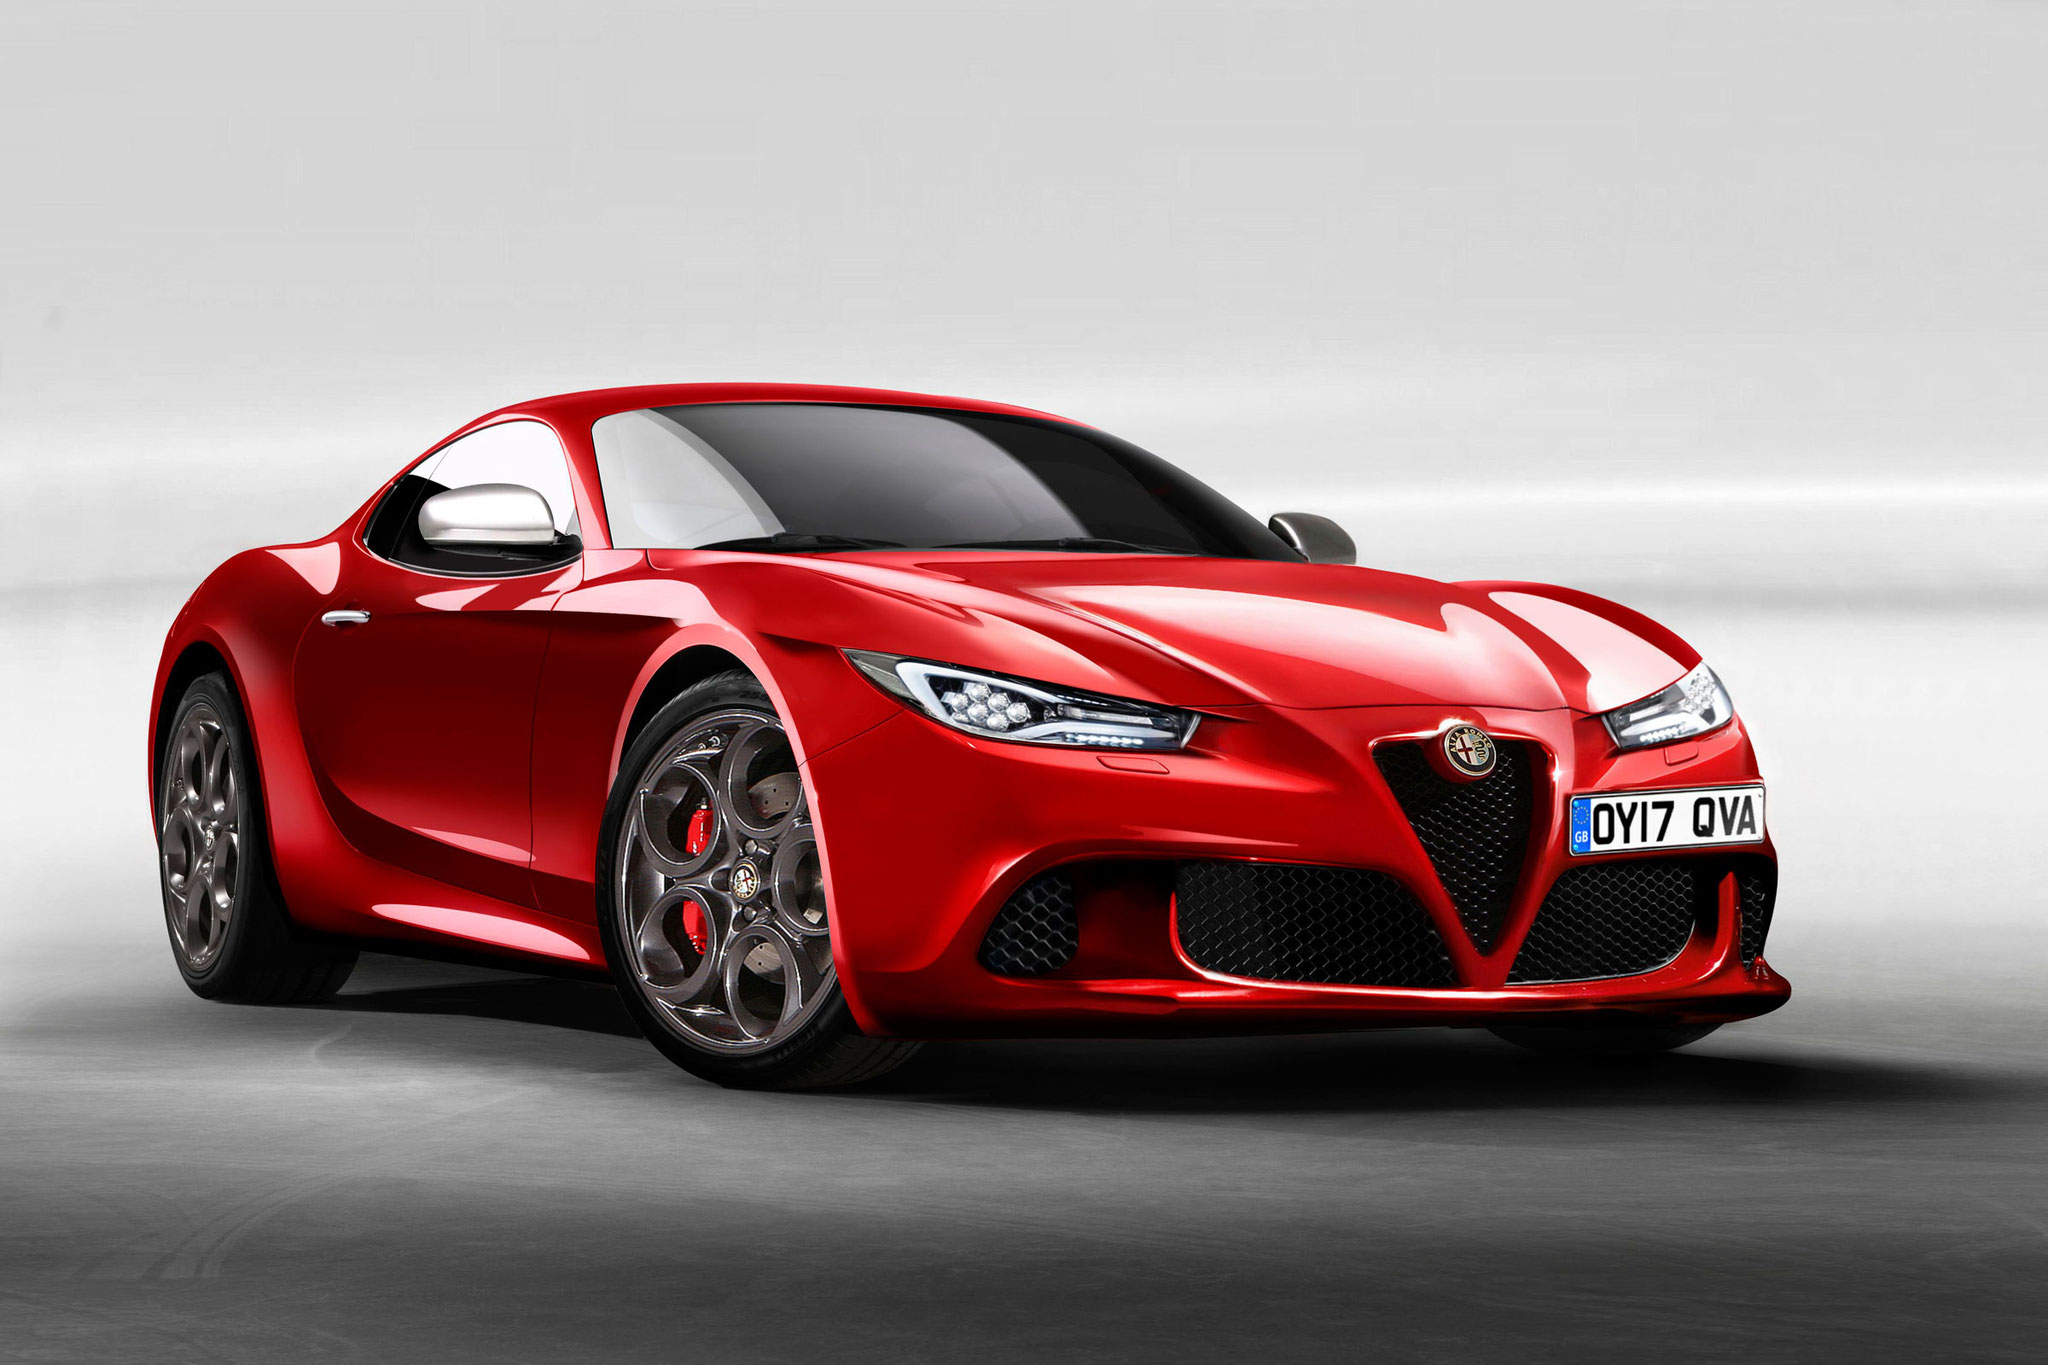 33 Alfa Romeo Pdf Manuals Free Download Ar Manual Wiring Vacuum Diagram It Is Believed That 100 Italian Company Initially The Called Societa Anonima Italiana Darracq And Was Founded By French Entrepreneur